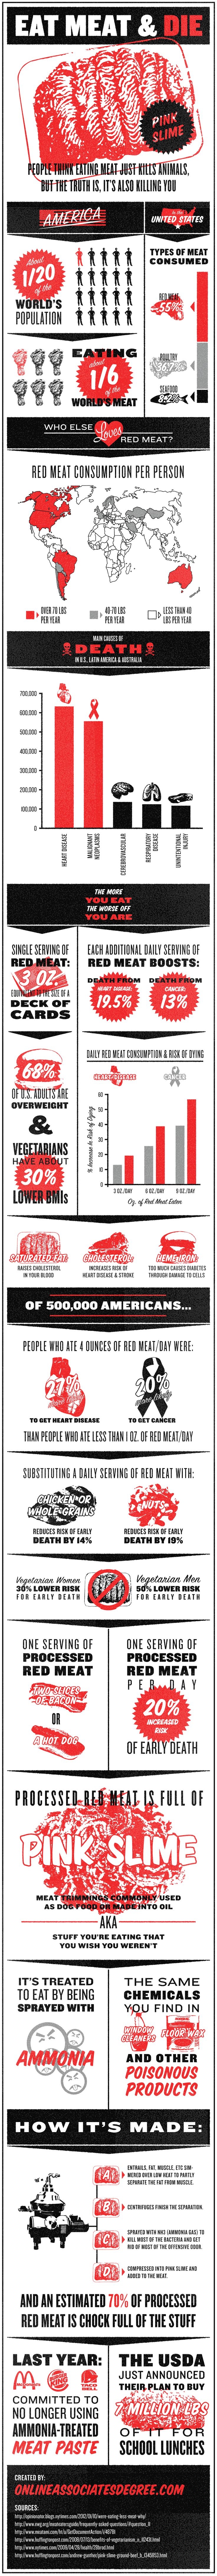 Is Red Meat Killing You?